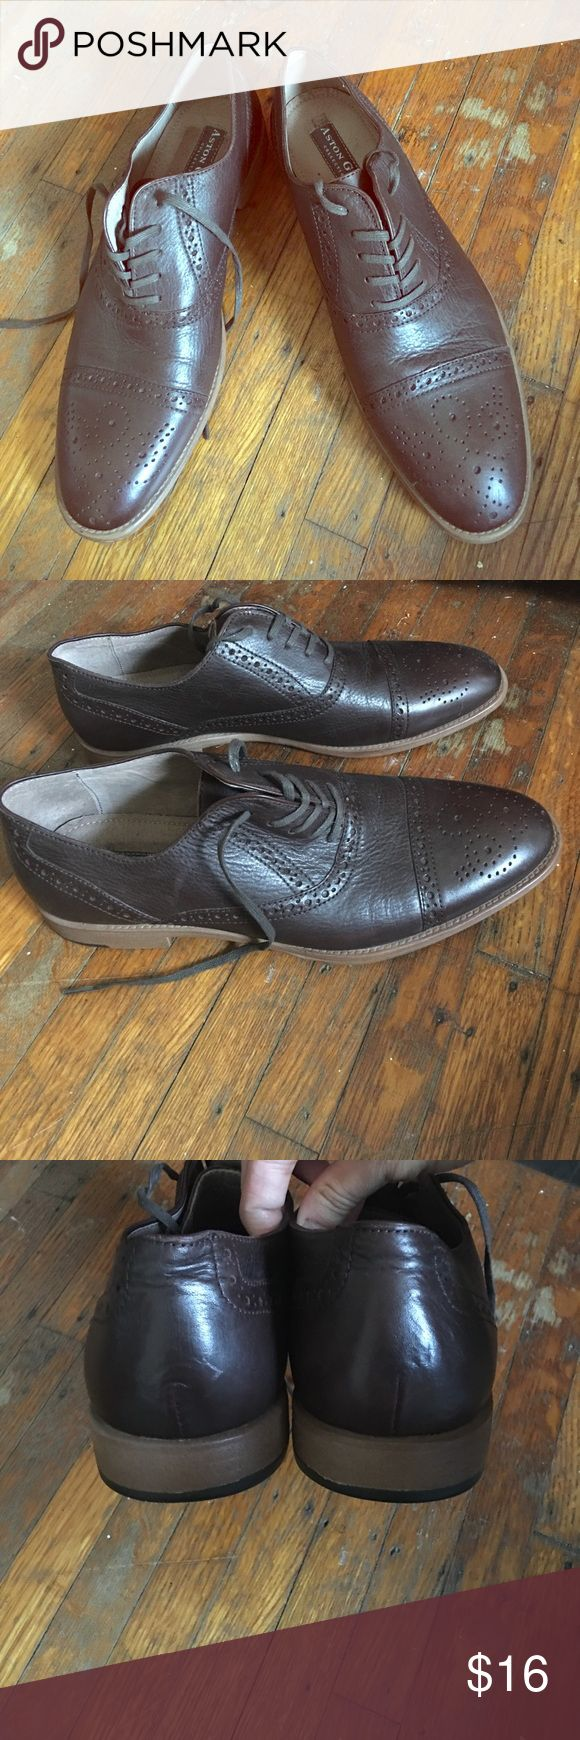 Men's dress shoe Chocolate brown color. Barely worn, light wear to them. aston grey Shoes